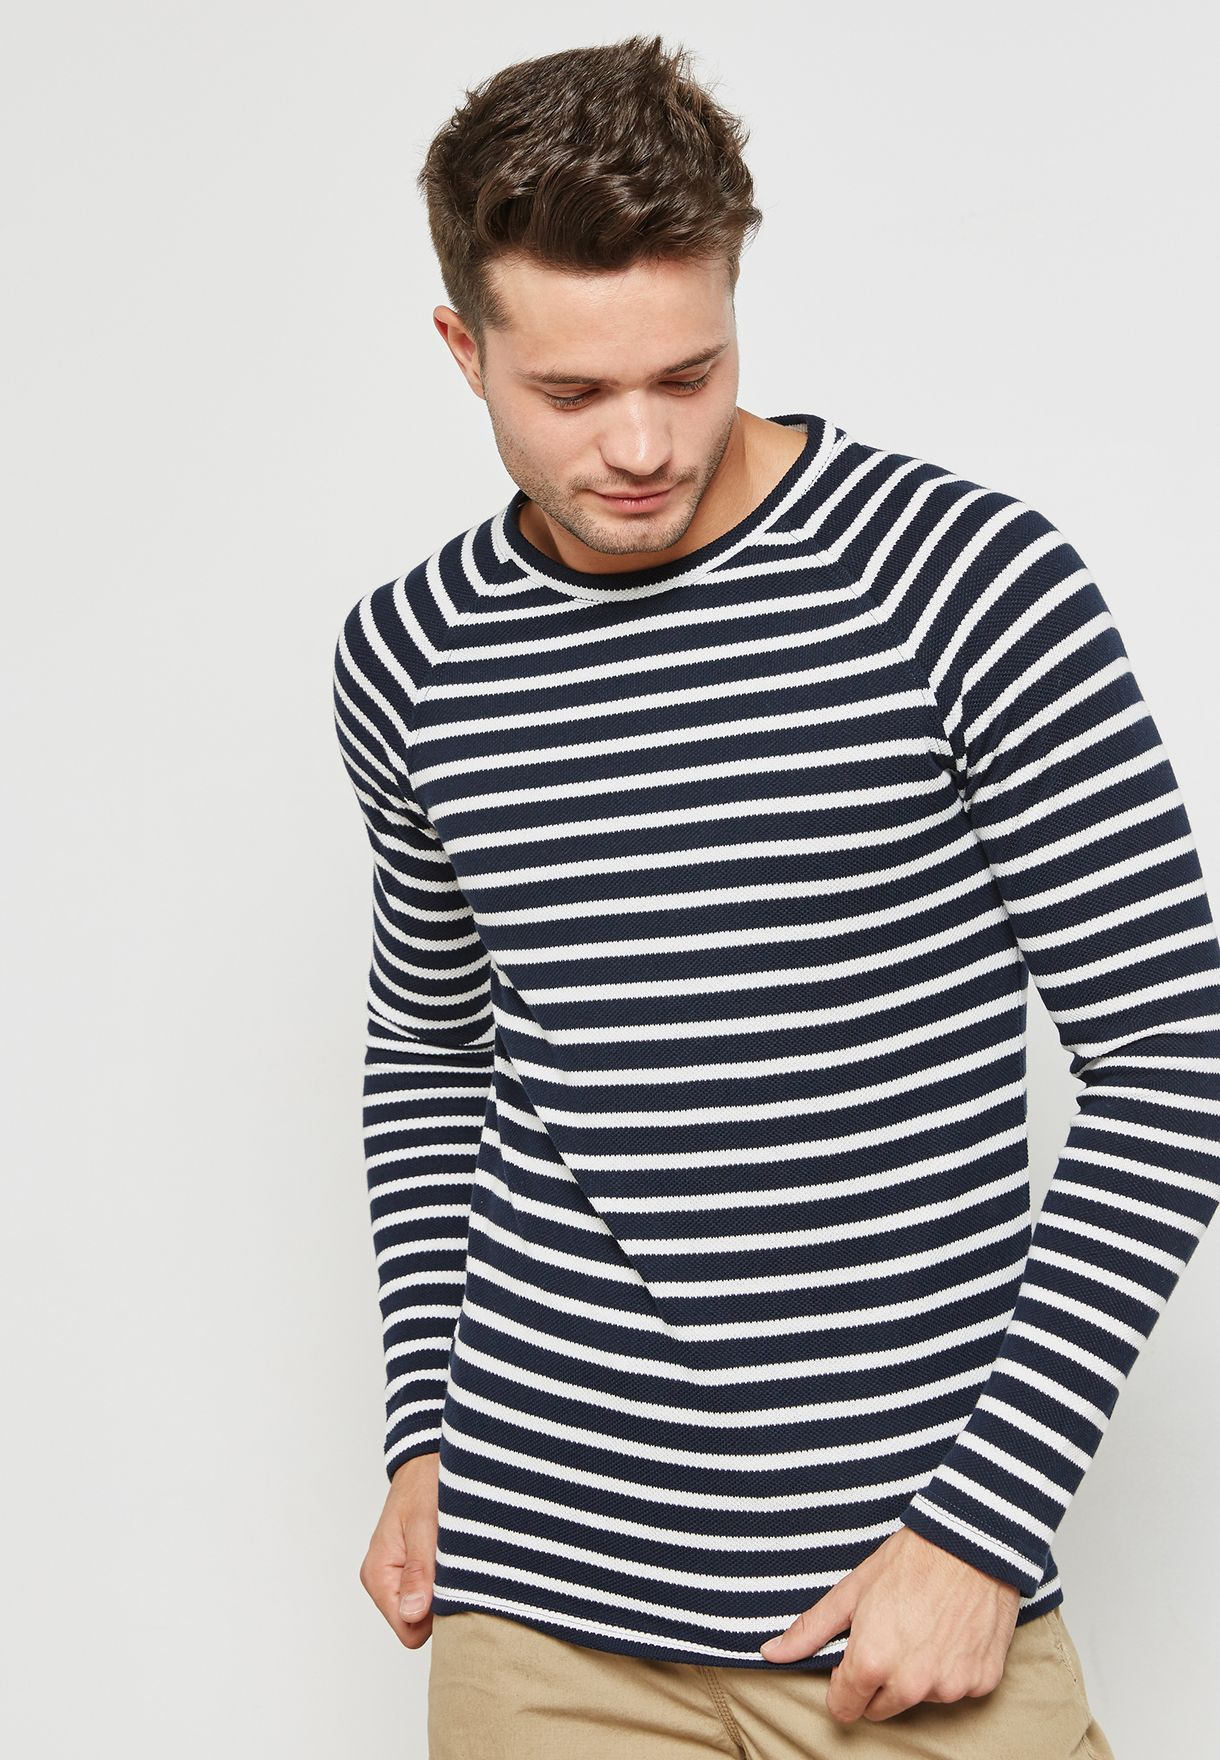 Chestnut Stripe  Sweatshirt